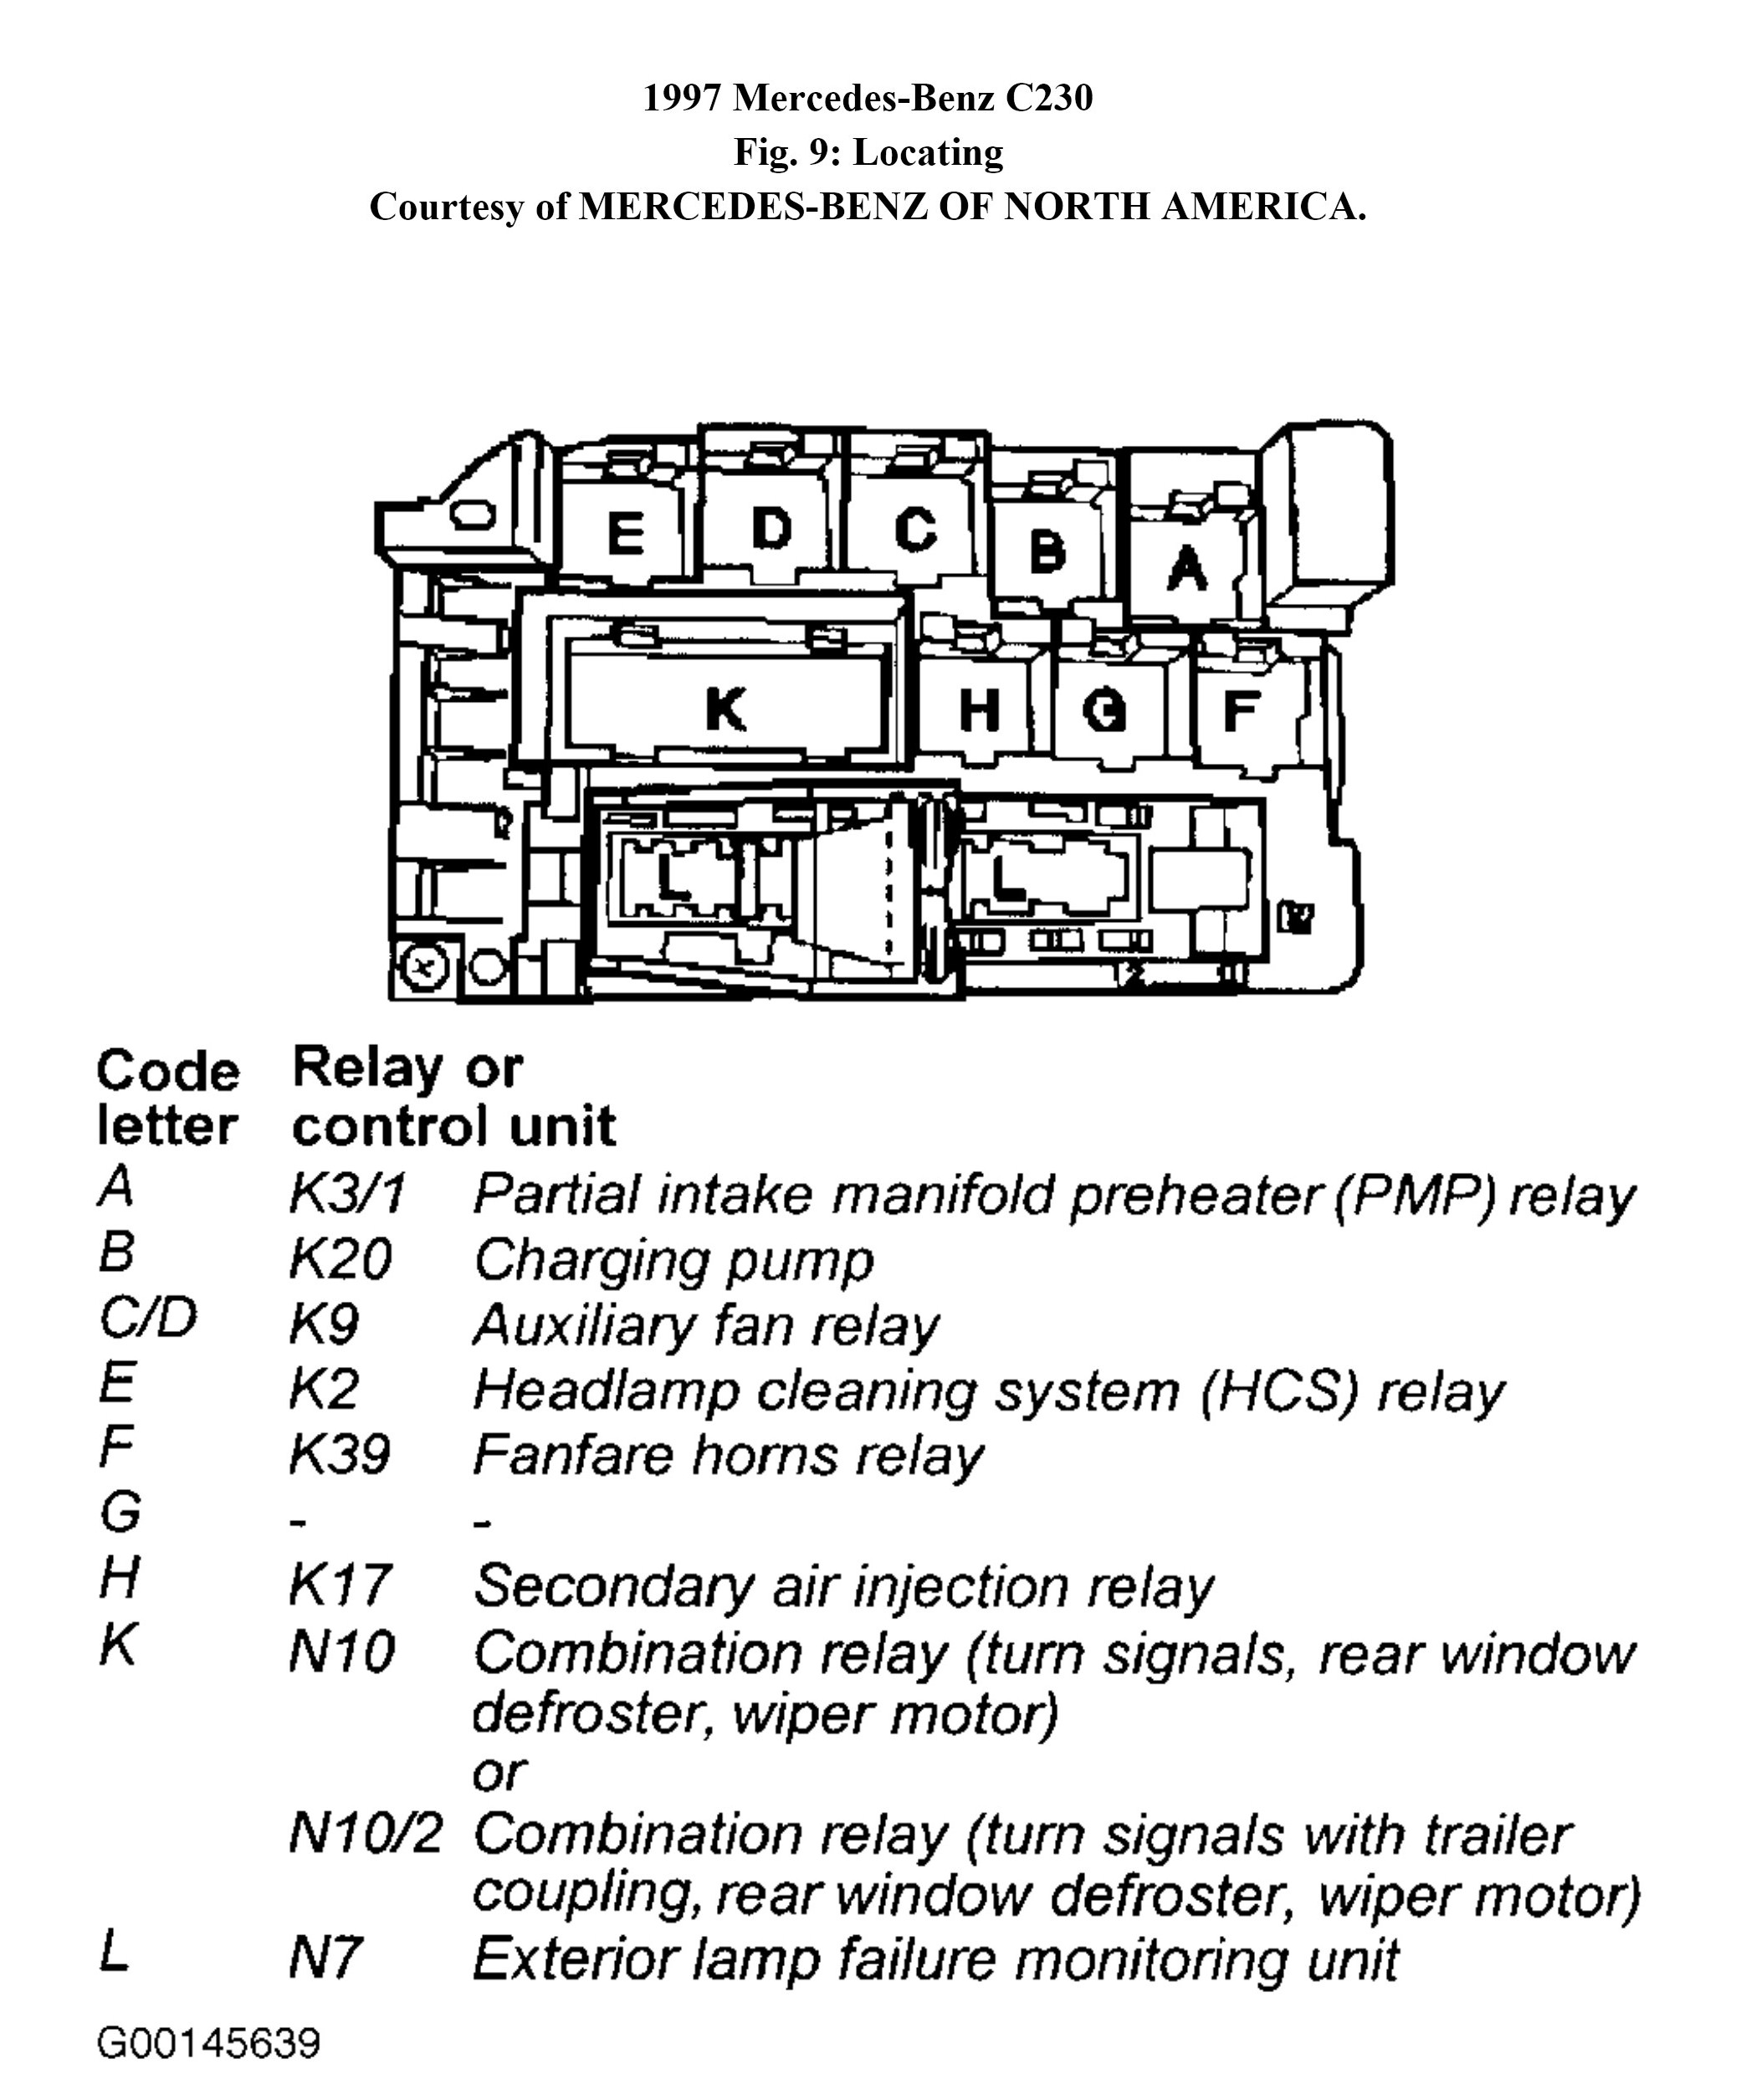 2005 C230 Ecu Wiring Diagram